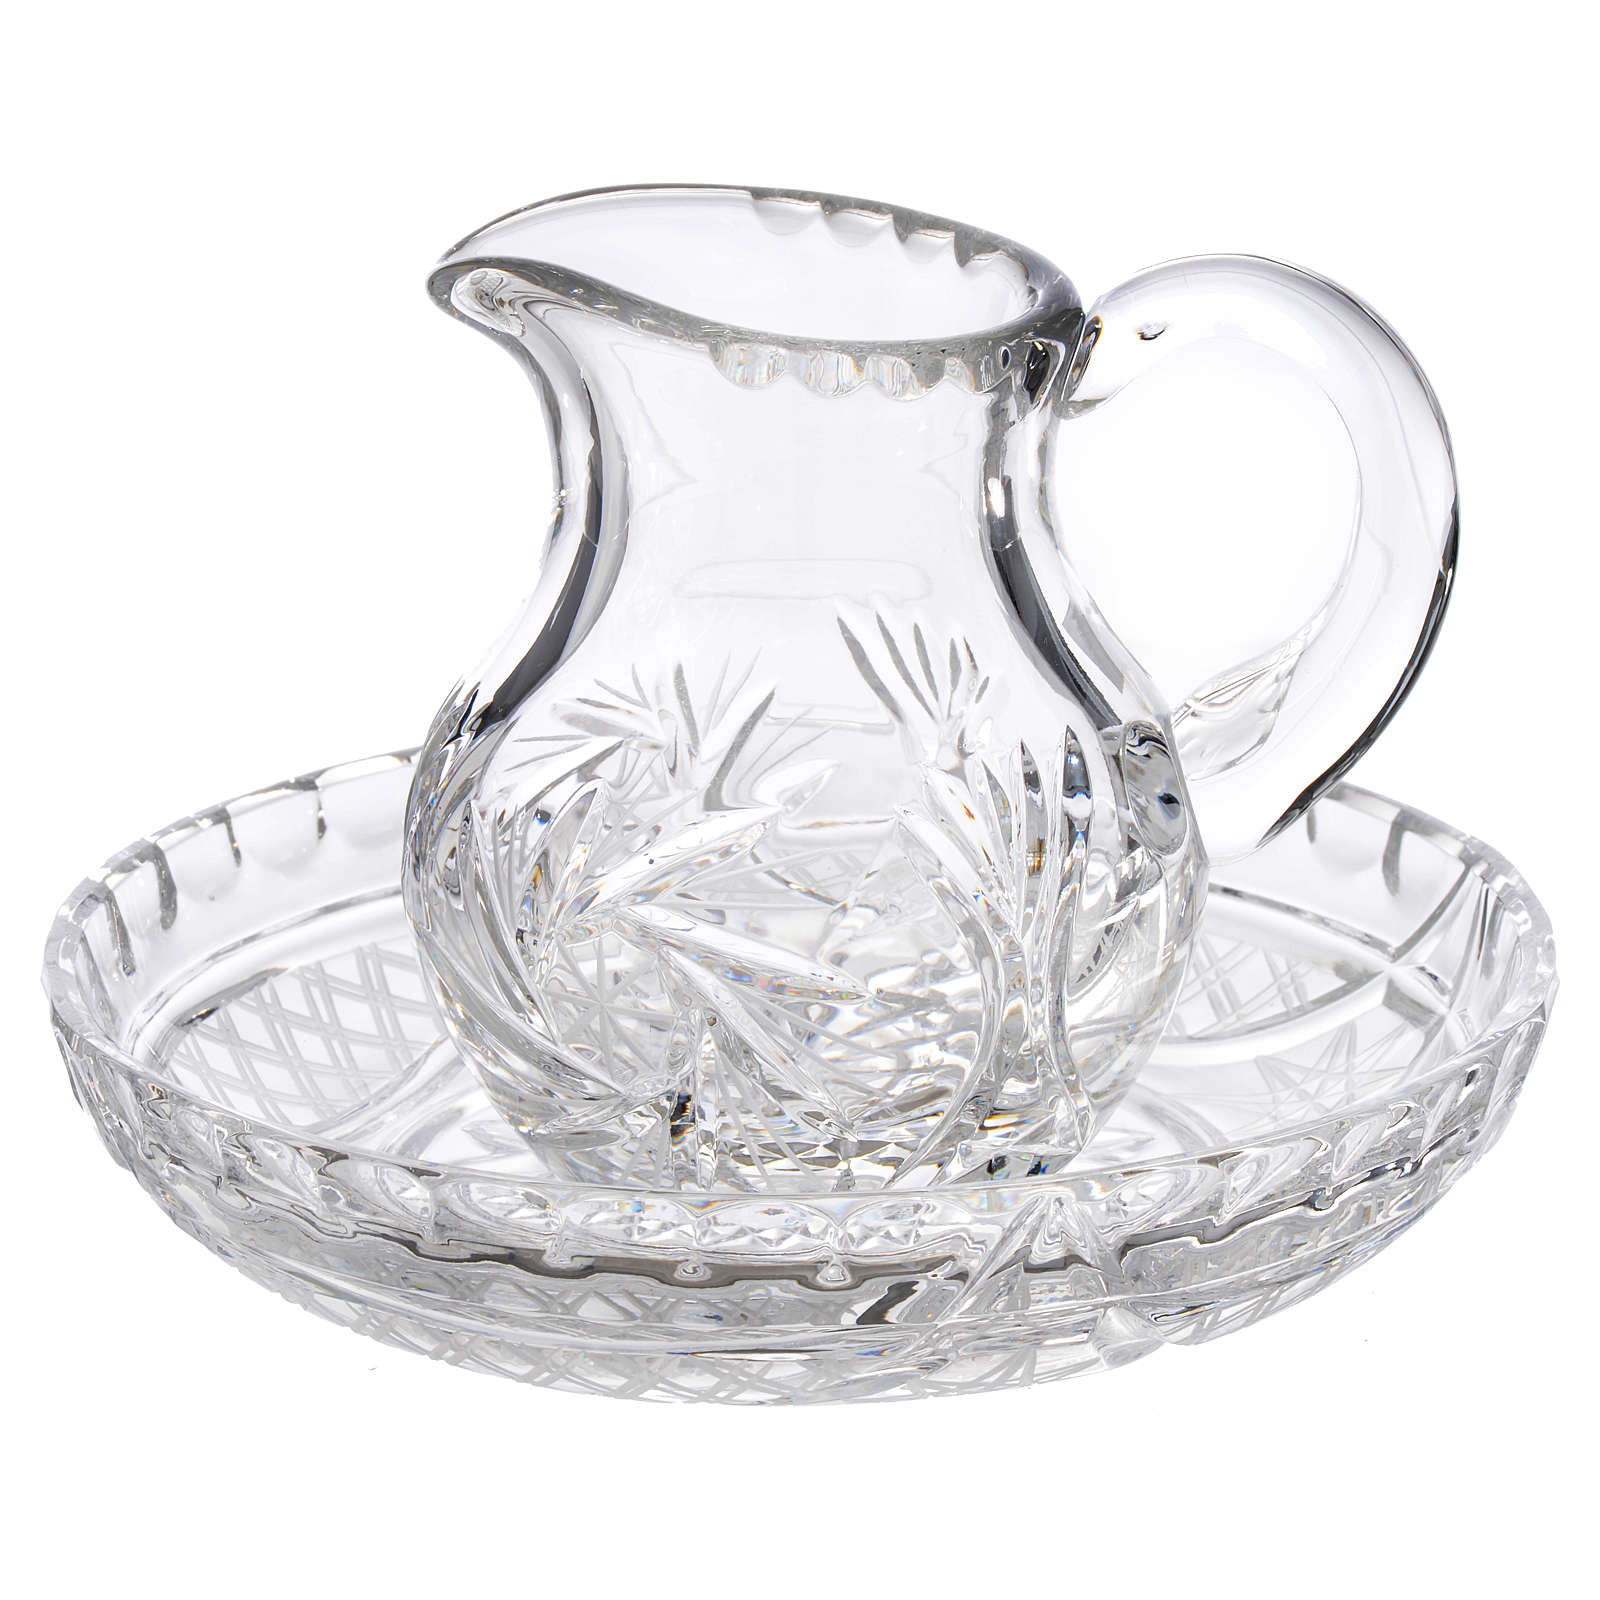 Pitcher with tray in crystal 200cc 3